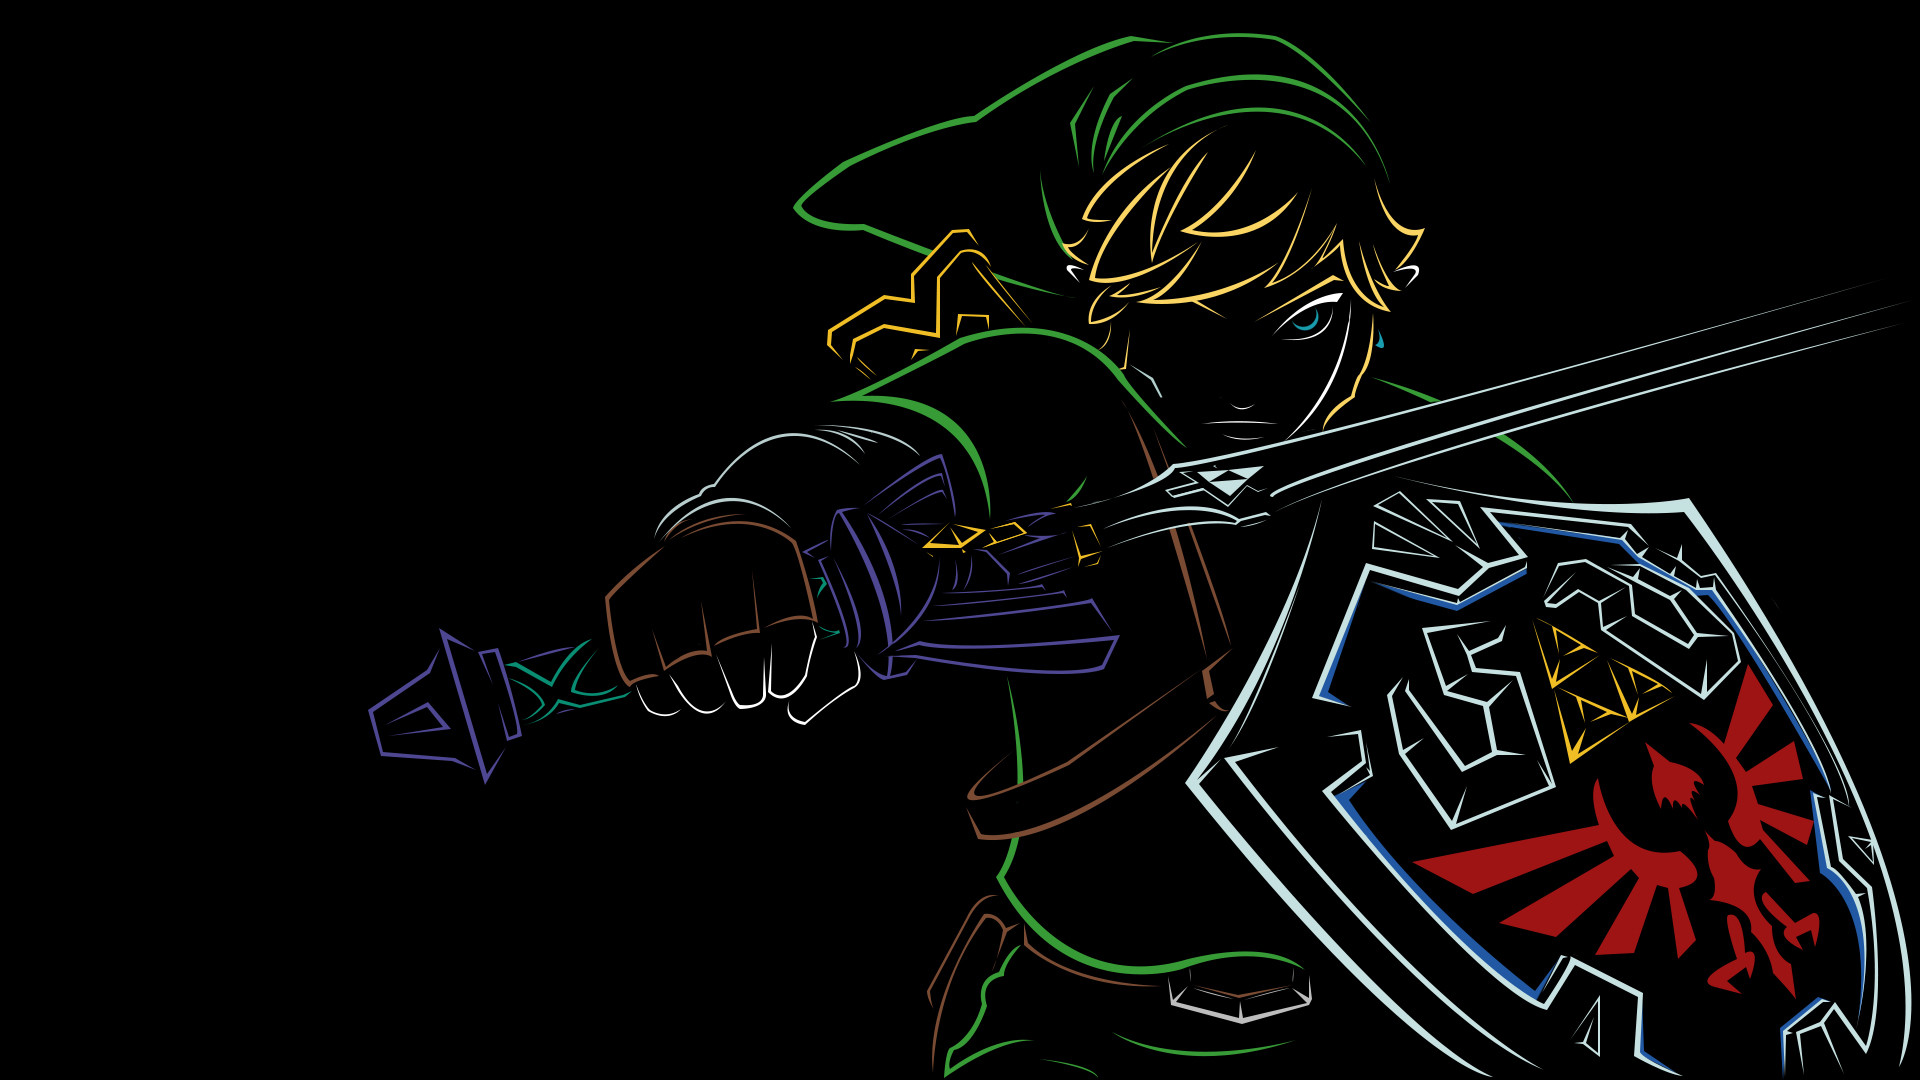 1920x1080 248 The Legend Of Zelda HD Wallpapers | Backgrounds - Wallpaper Abyss ...